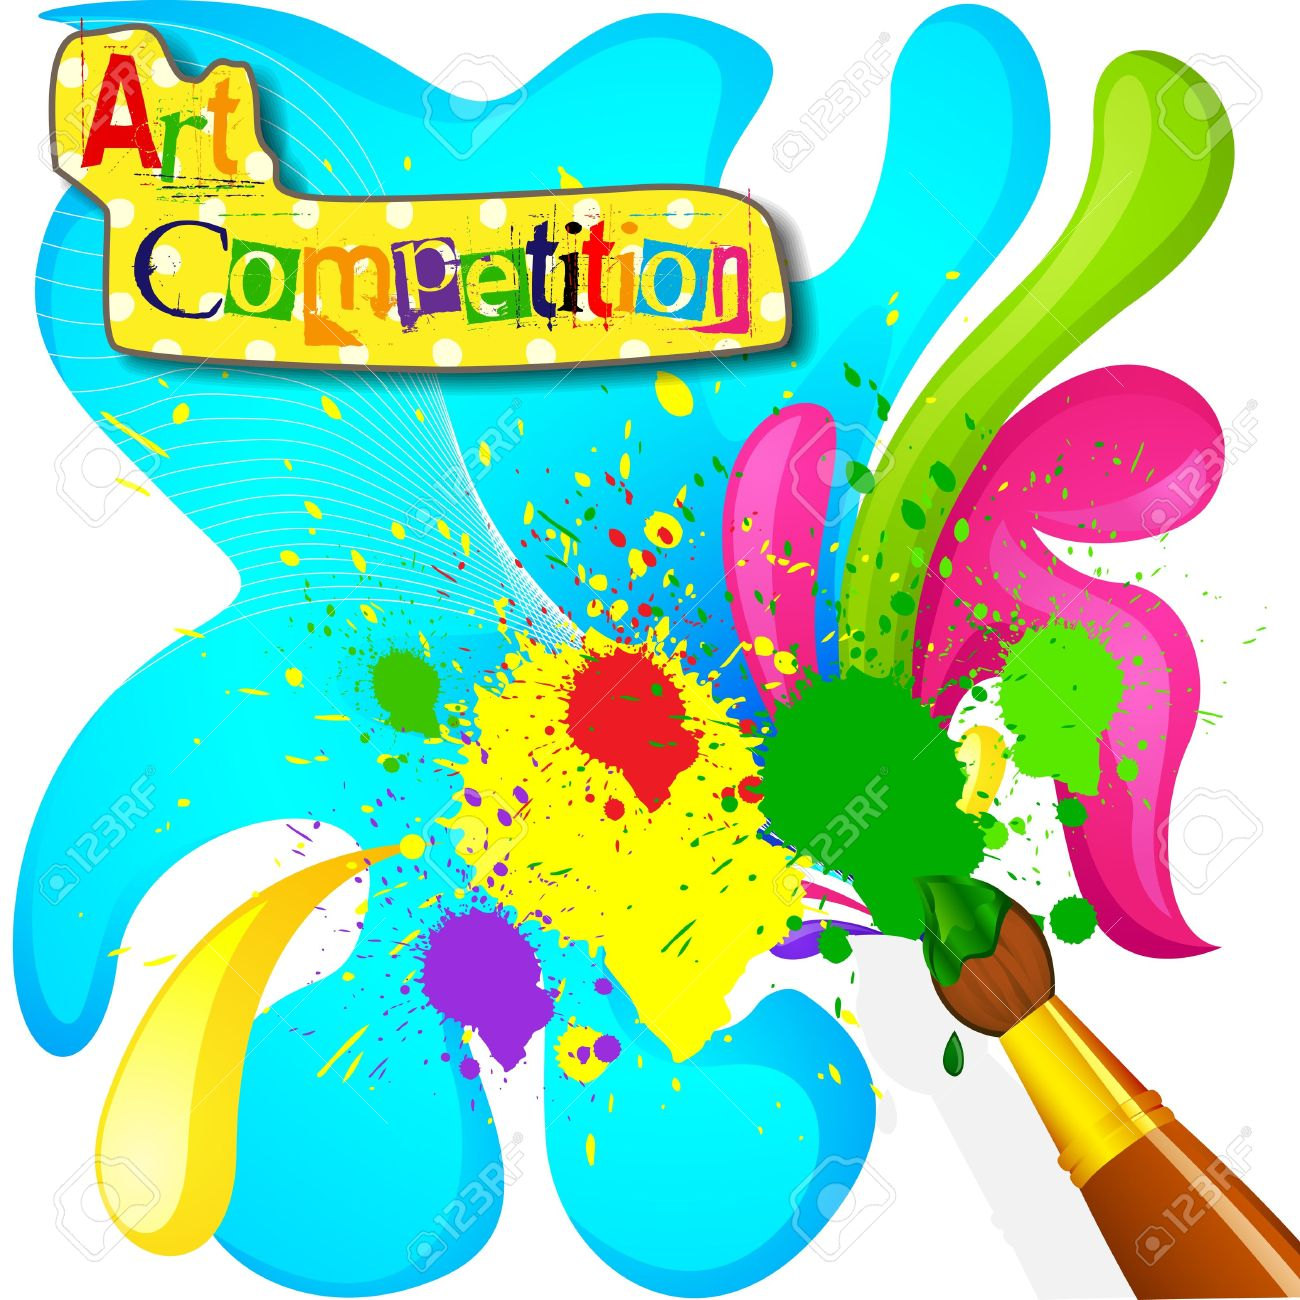 Art And Painting Competition Poster Royalty Free Cliparts Vectors And Stock Illustration Image 18810668